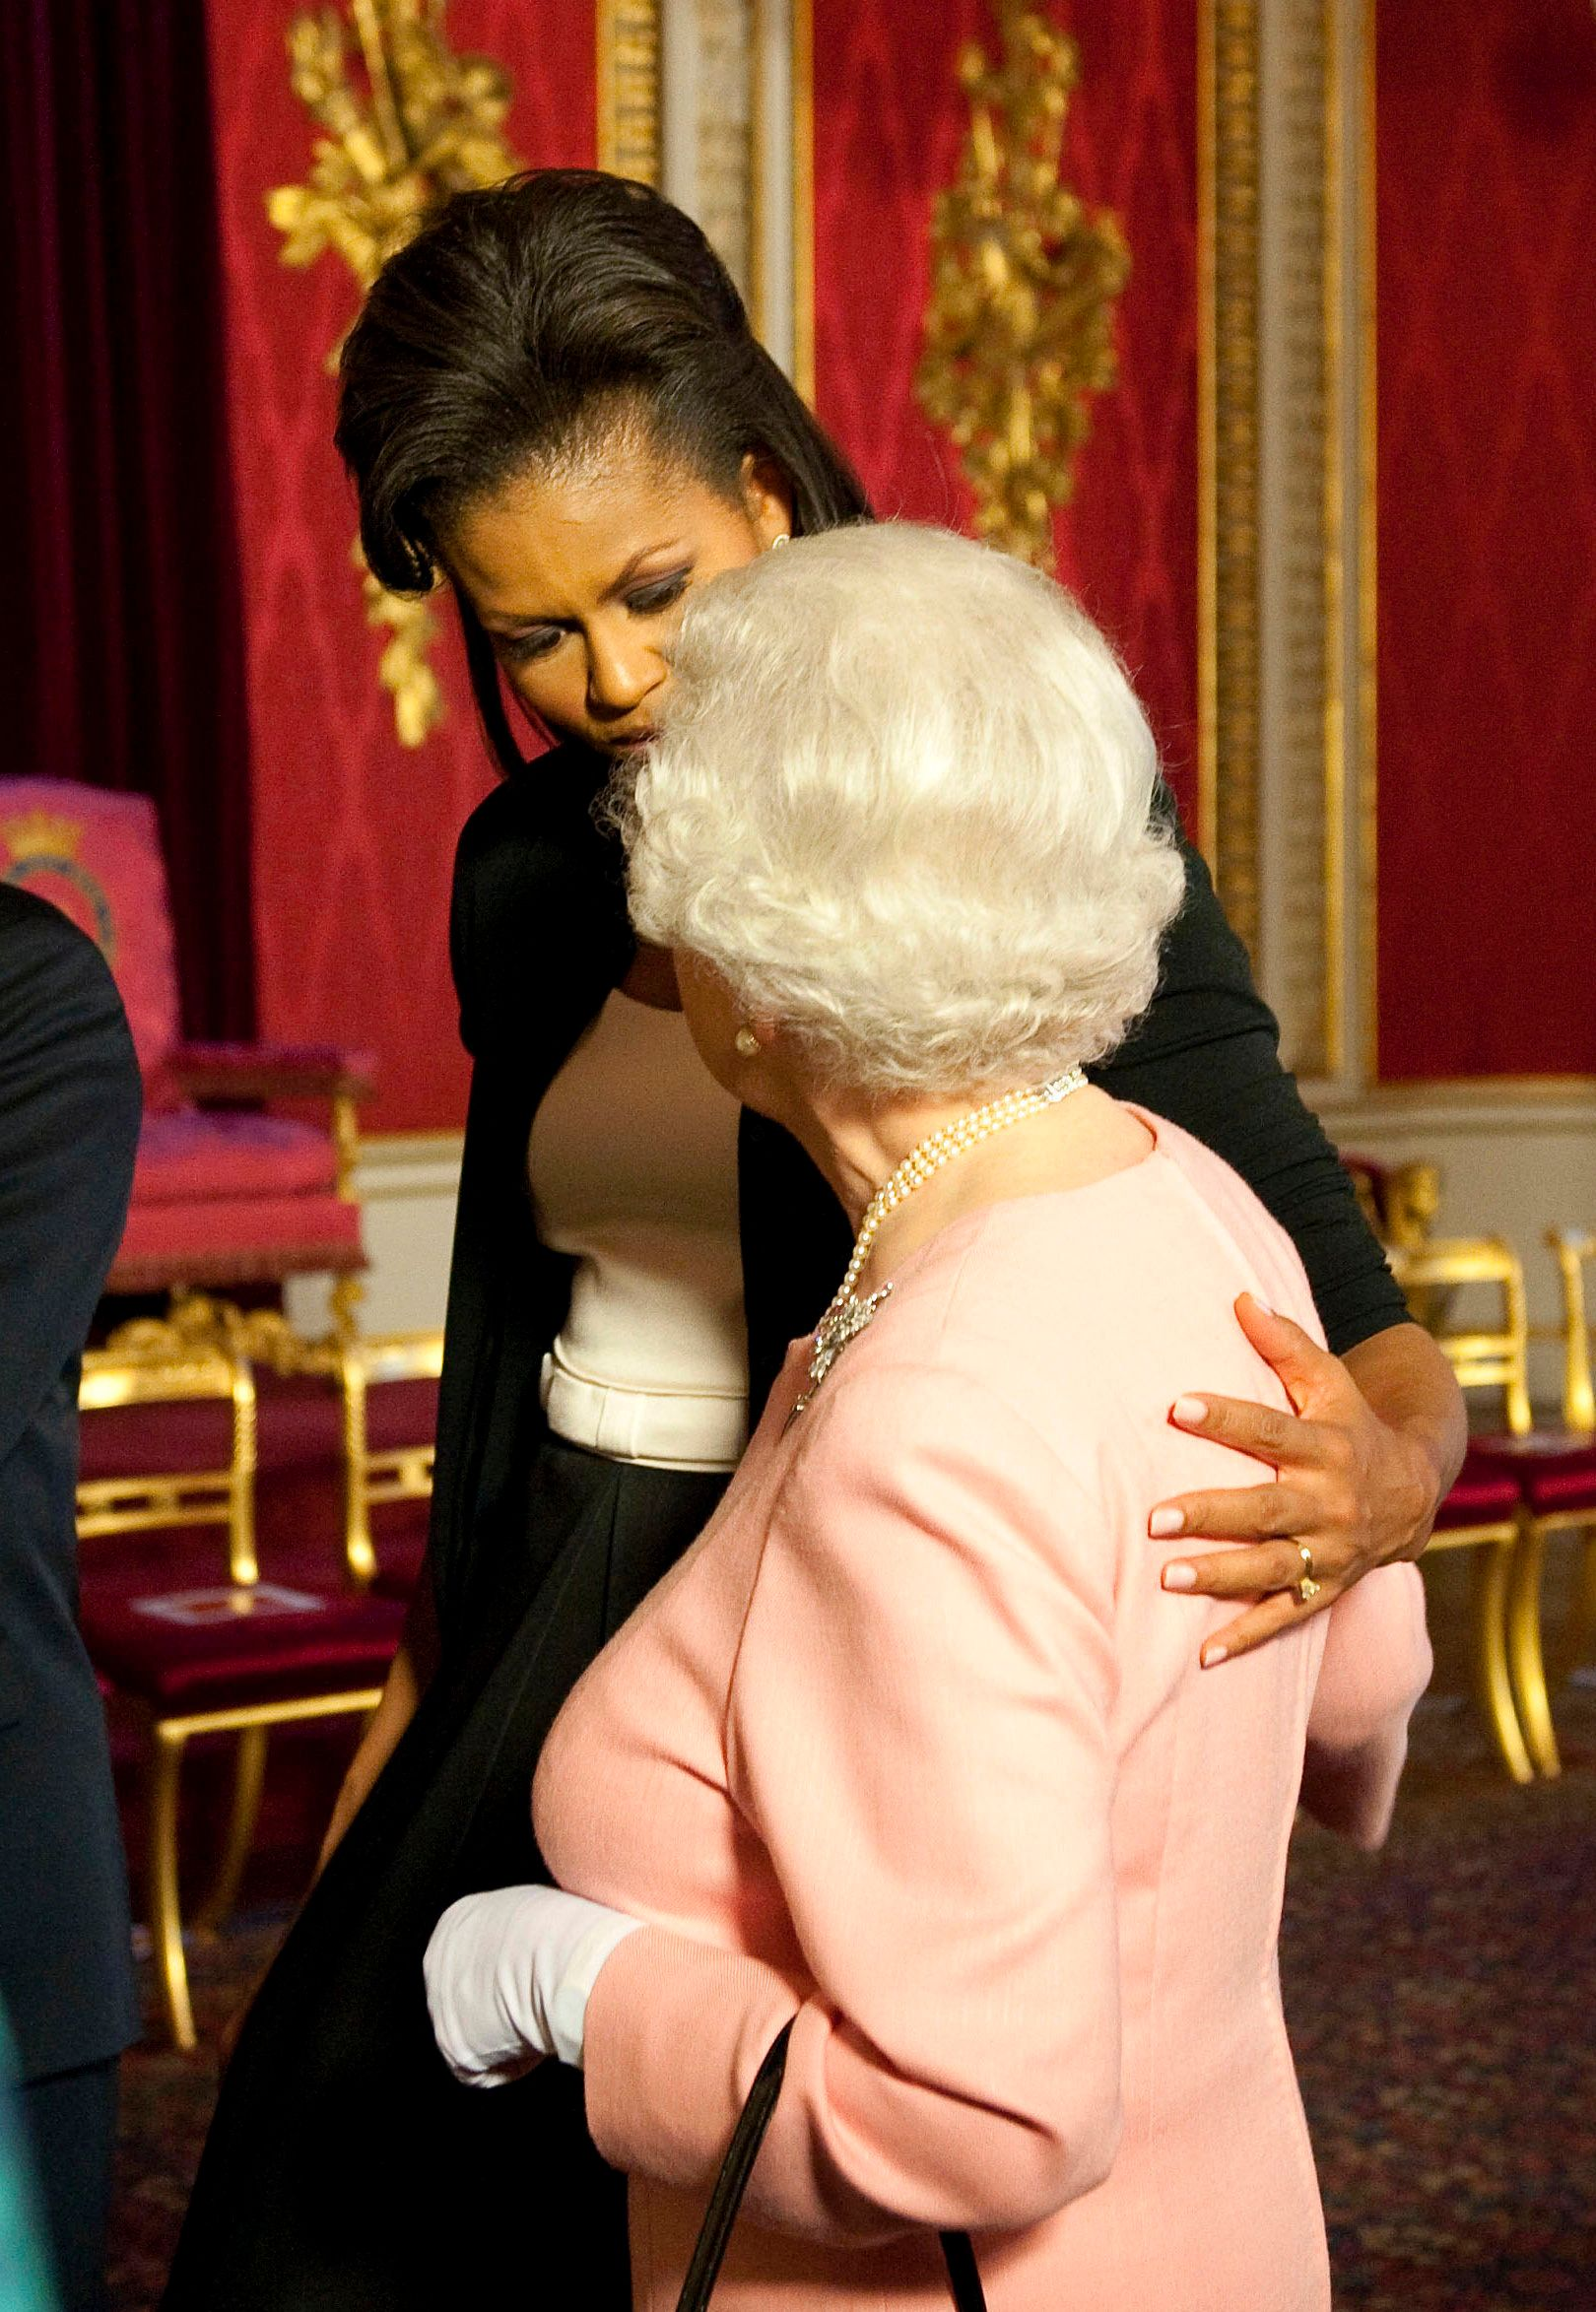 After Nearly 10 Years, Michelle Obama Finally Explains Why She Hugged The